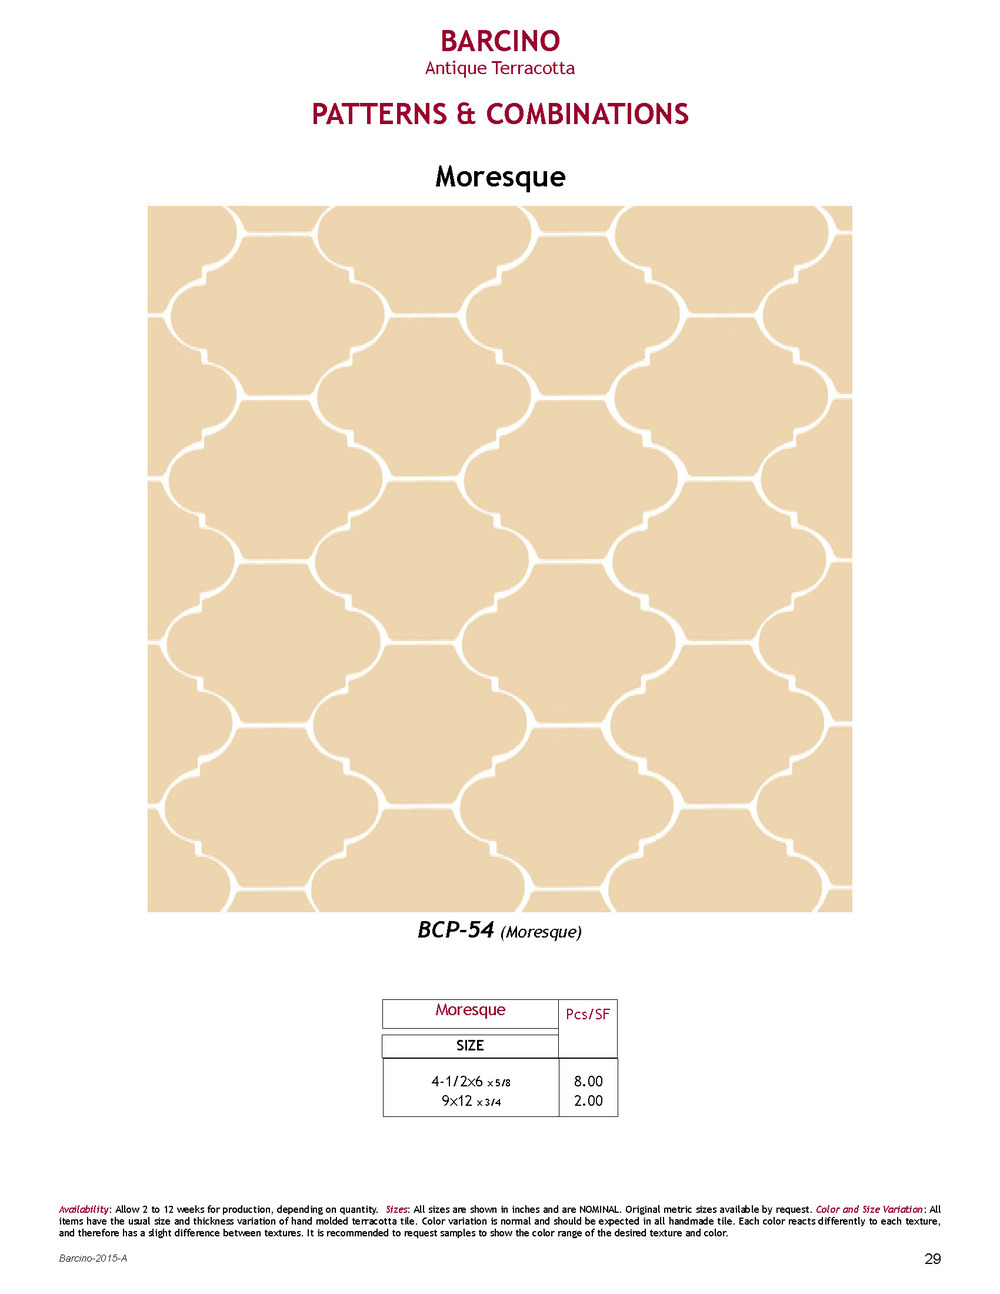 2-Barcino-Patterns&Combinations2015-A_Page_29.jpg